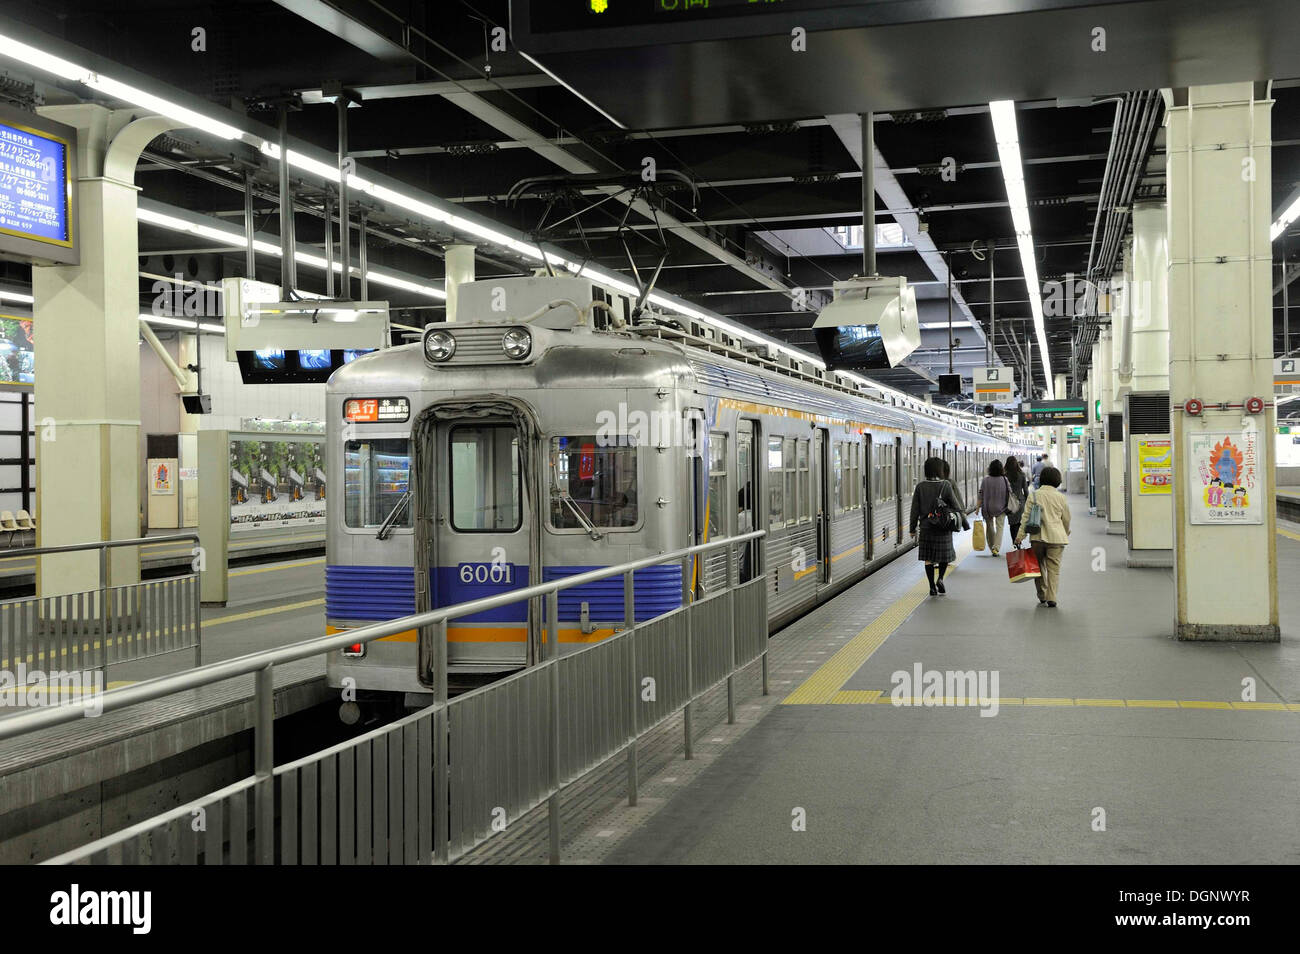 Train from the Nankai Line at the station on a platform with a yellow guide strip for the visually impaired on the ground and - Stock Image